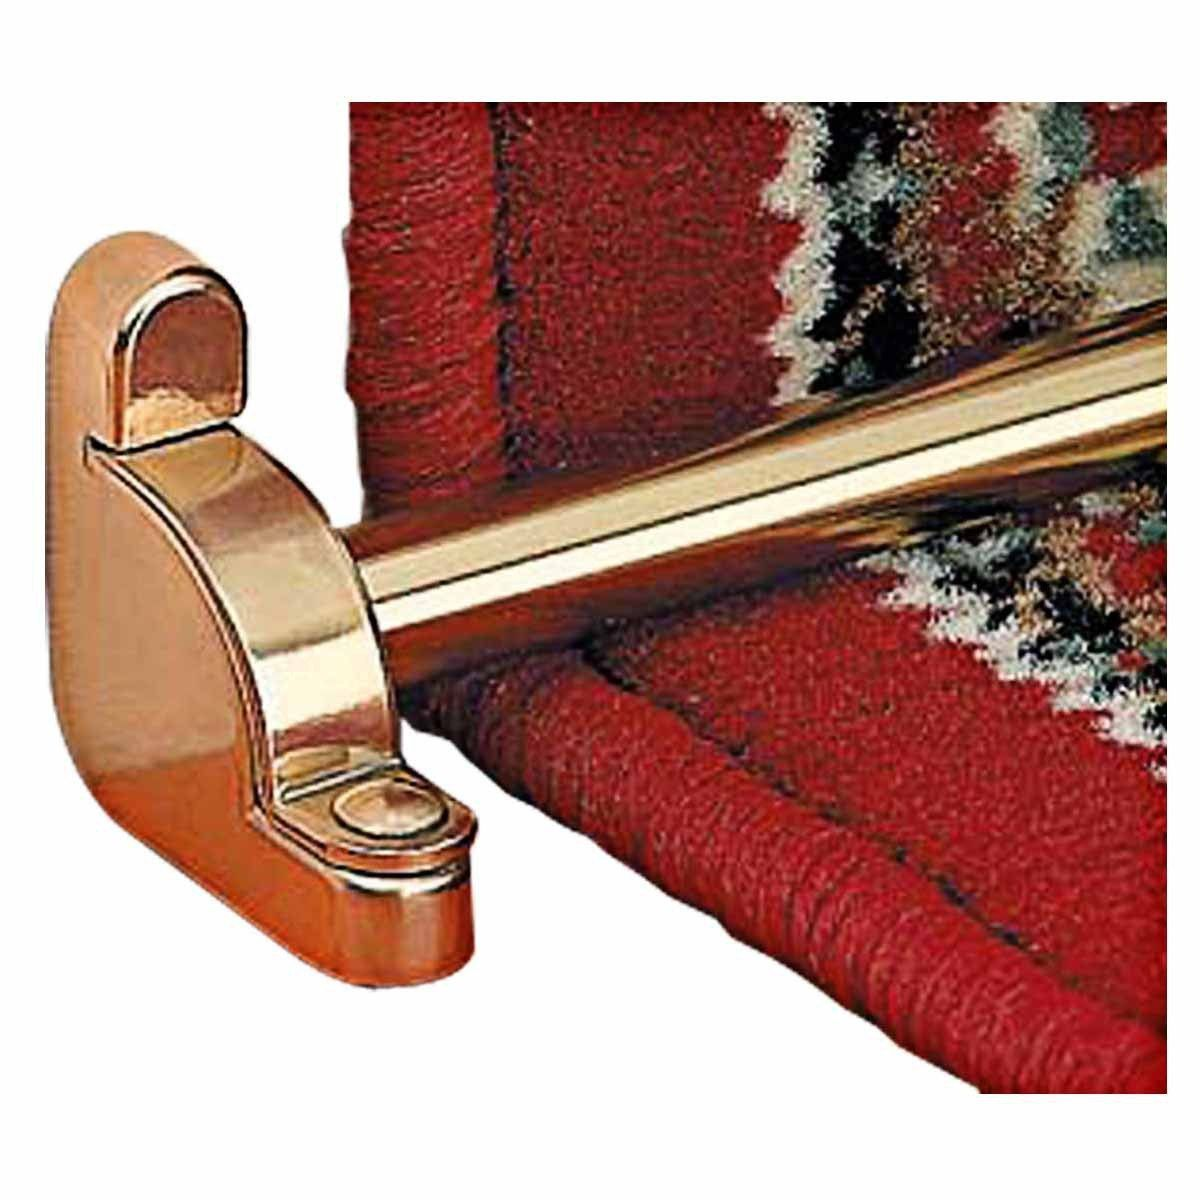 Best Bright Brass Carpet Rod Holder For Stair Runner 39 5 8 640 x 480